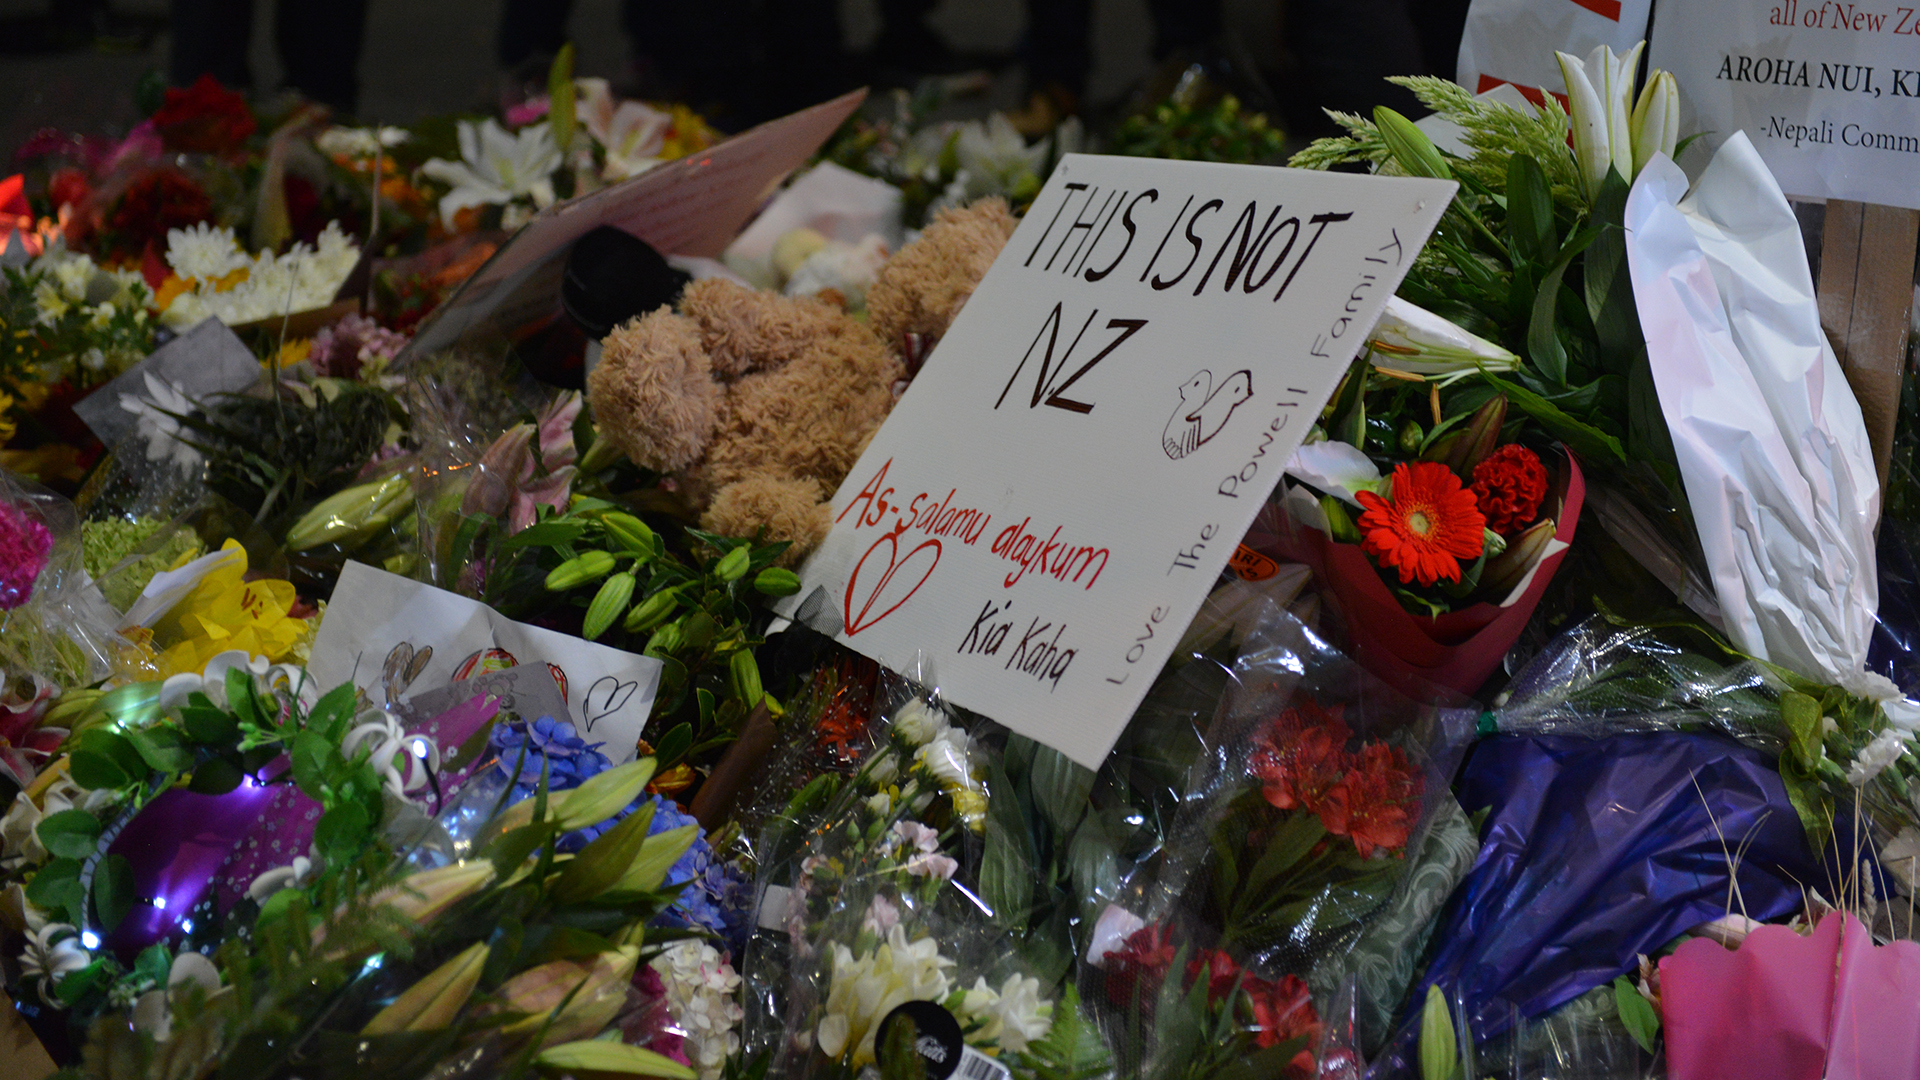 Christchurch mosque attacks: Gunman changes plea to guilty